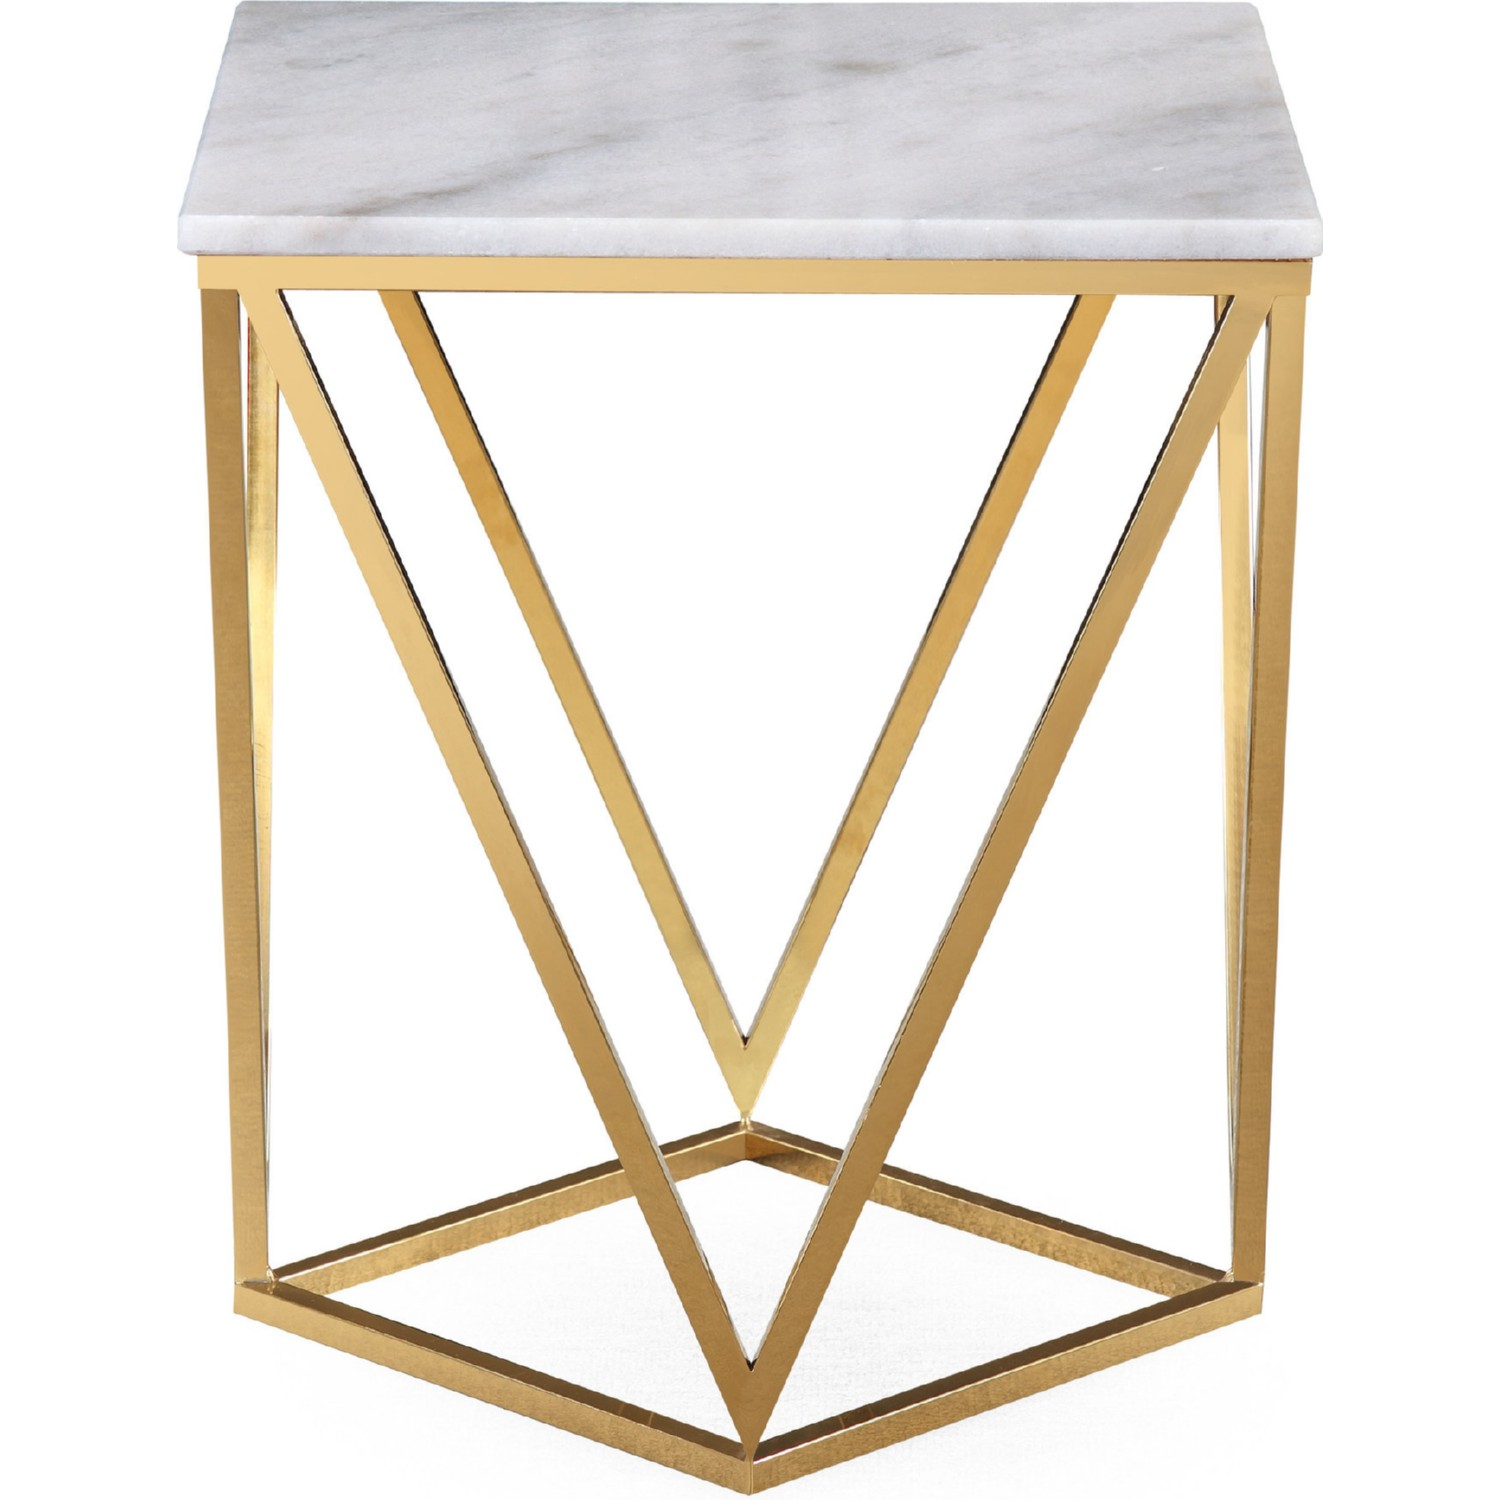 triangle accent table thefoxy blog captivating and tov furniture leopold white marble side gold dresser chest target round mirror black piece living room set grey dining metal